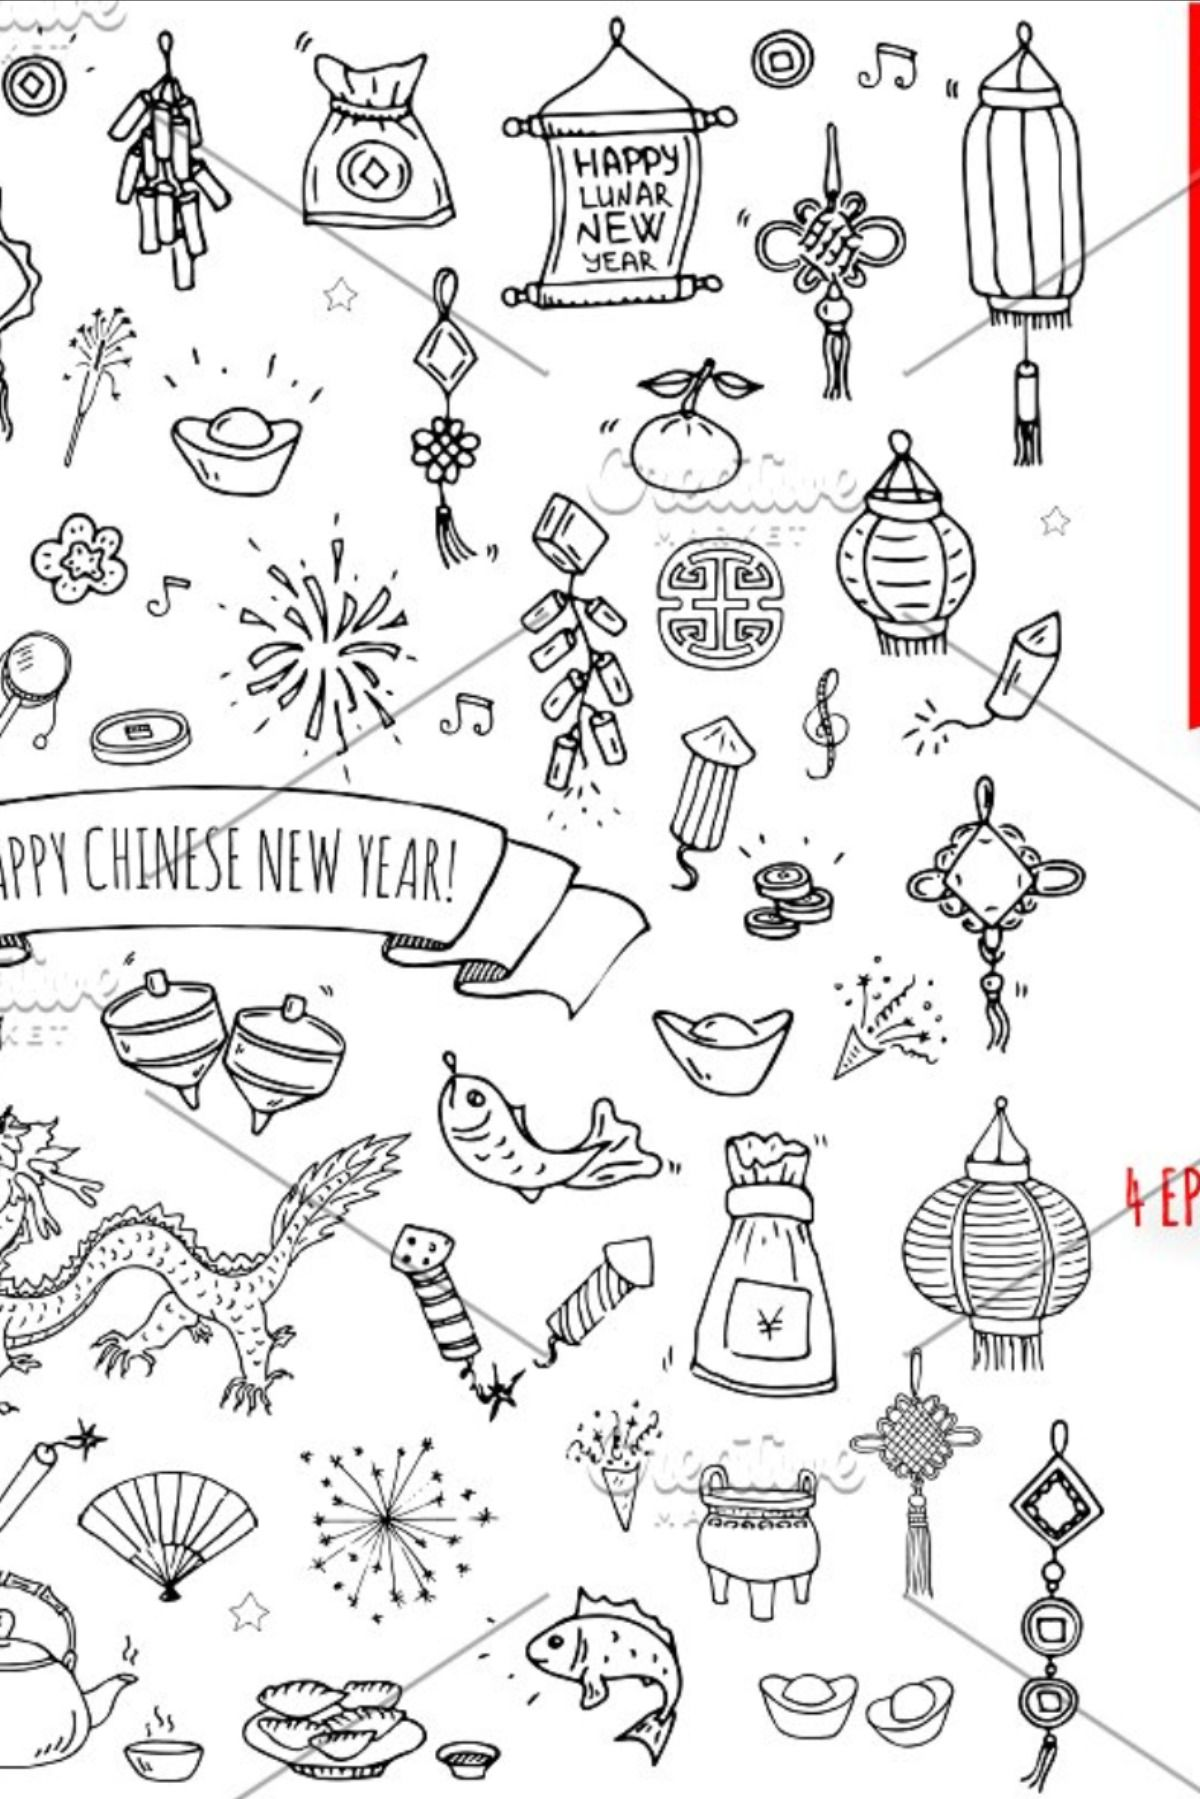 77 Chinese New Year hand drawn icons in 2020 Hand drawn